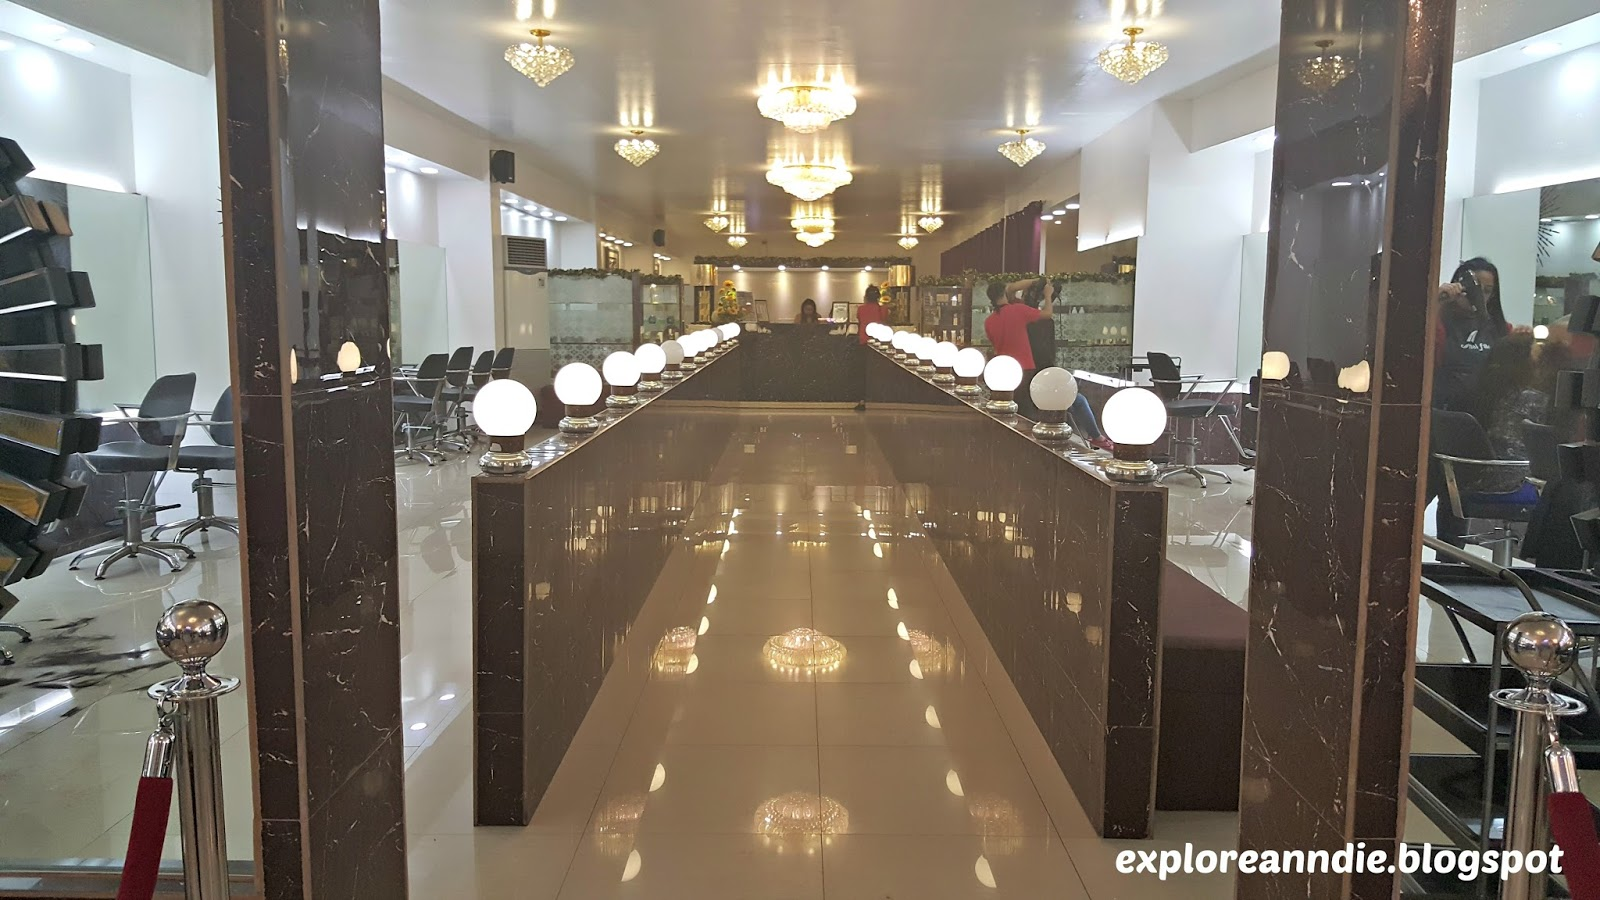 But Buffet Salon Exploreanndie Whole Body Massage With Unlimited Buffet